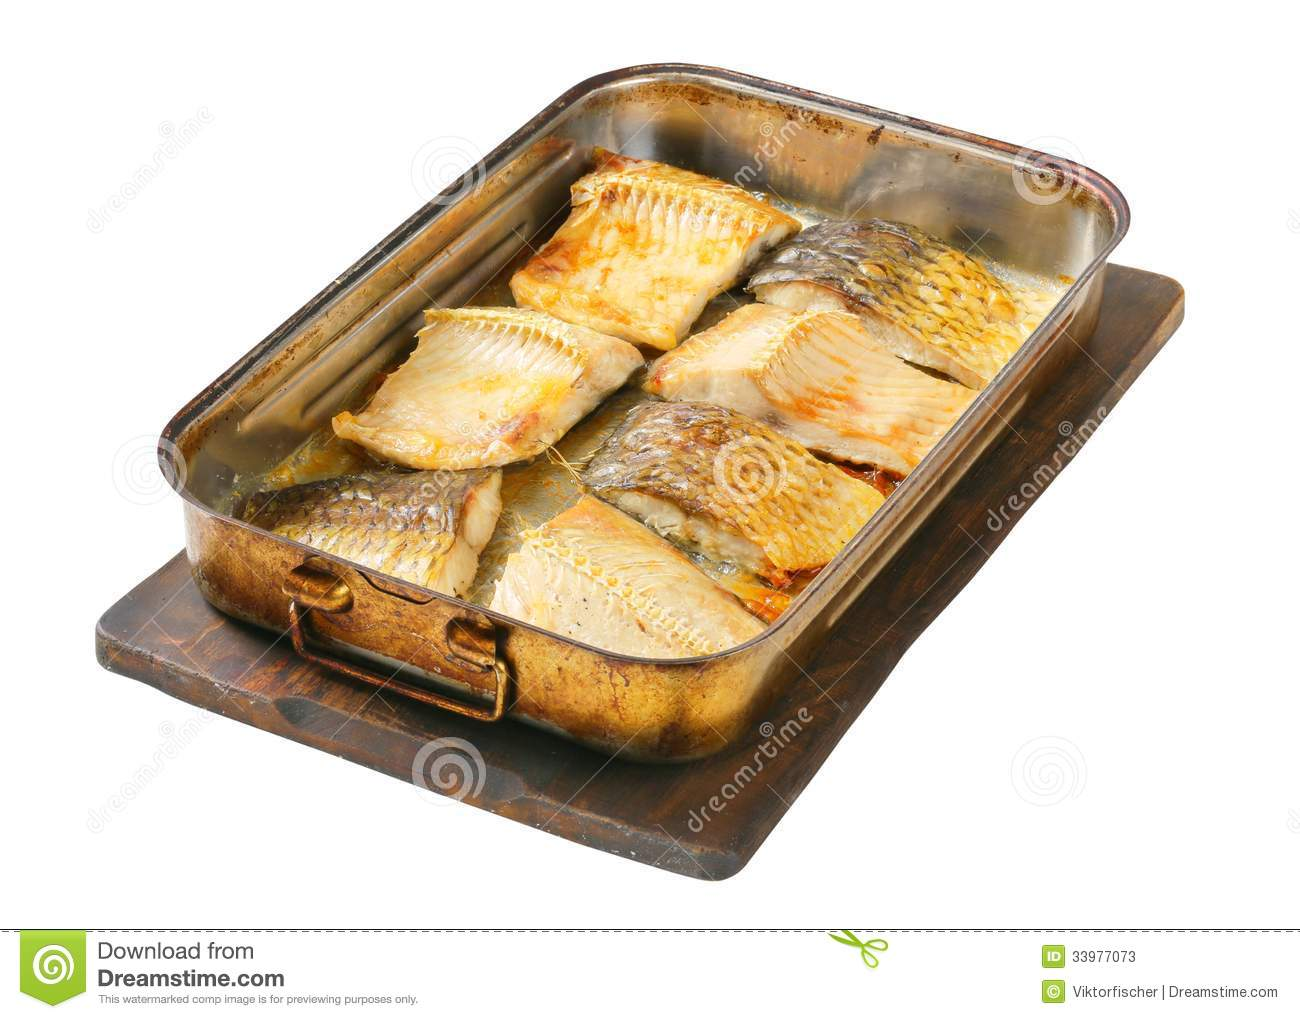 how to cook carp in oven